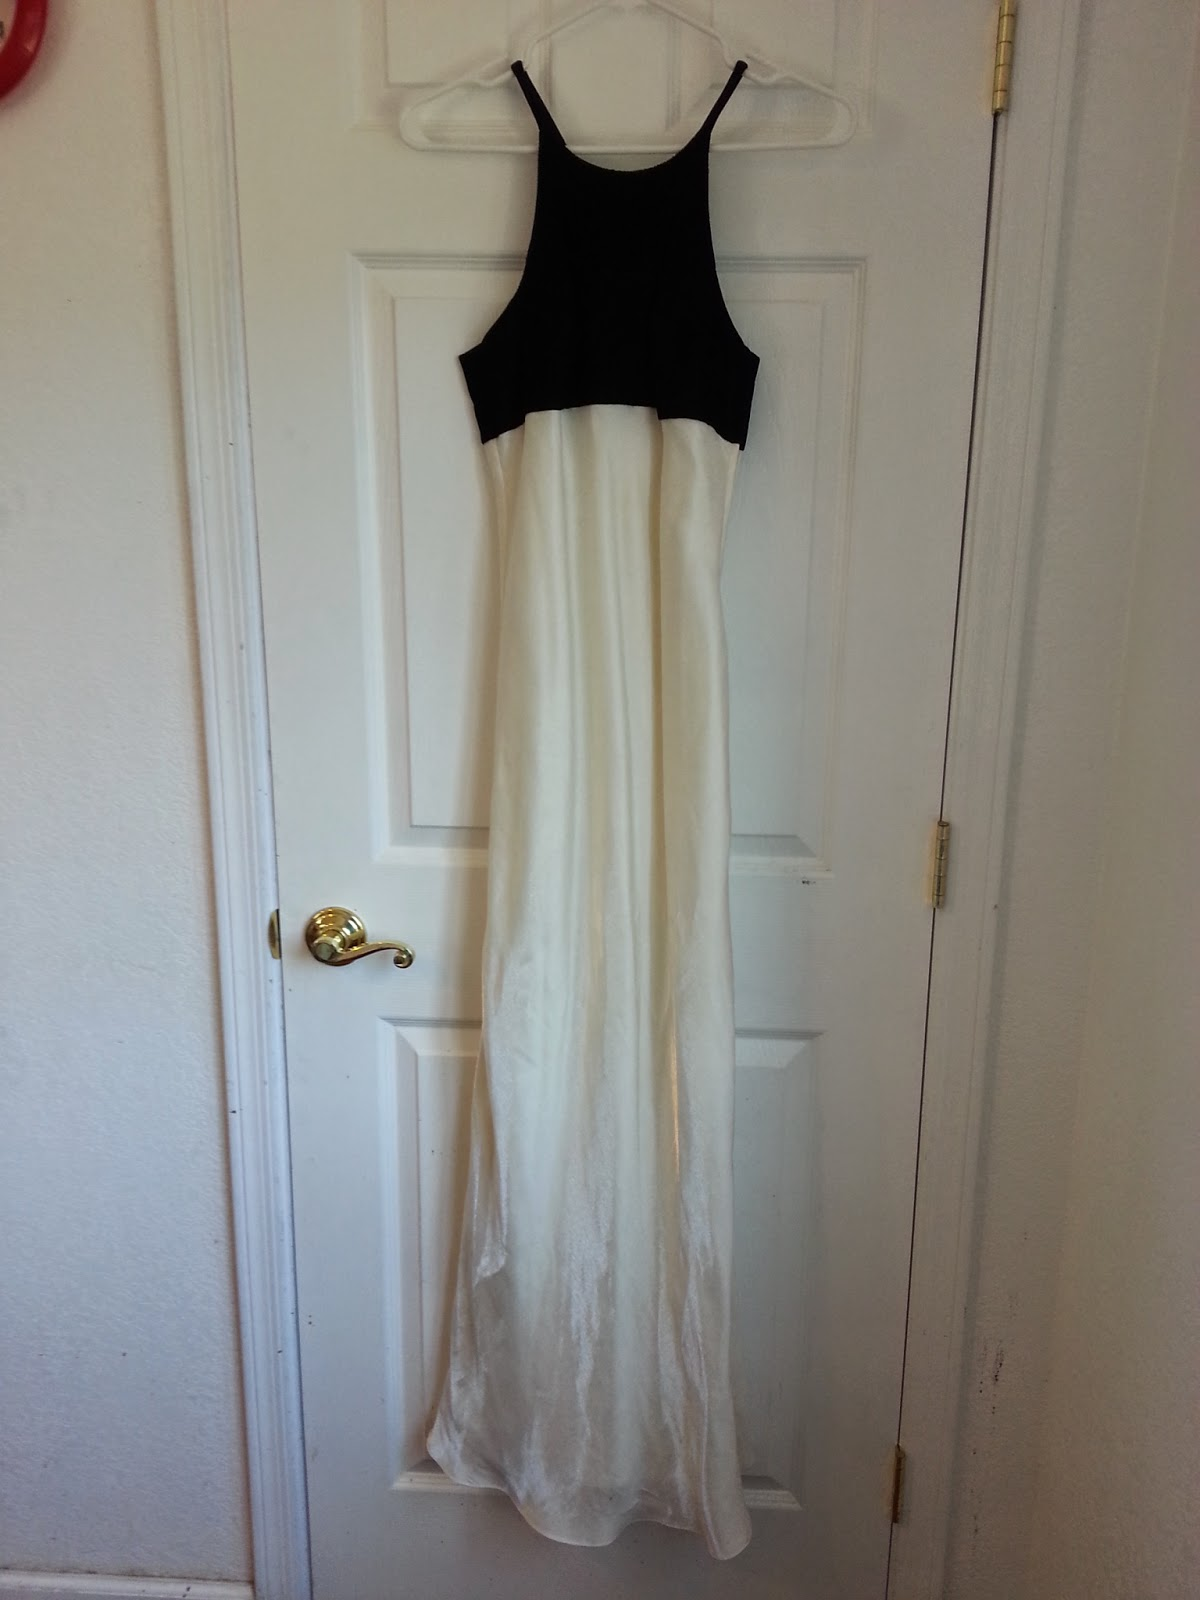 Angel Gowns By Karen From Prom Dress To Angel Gowns